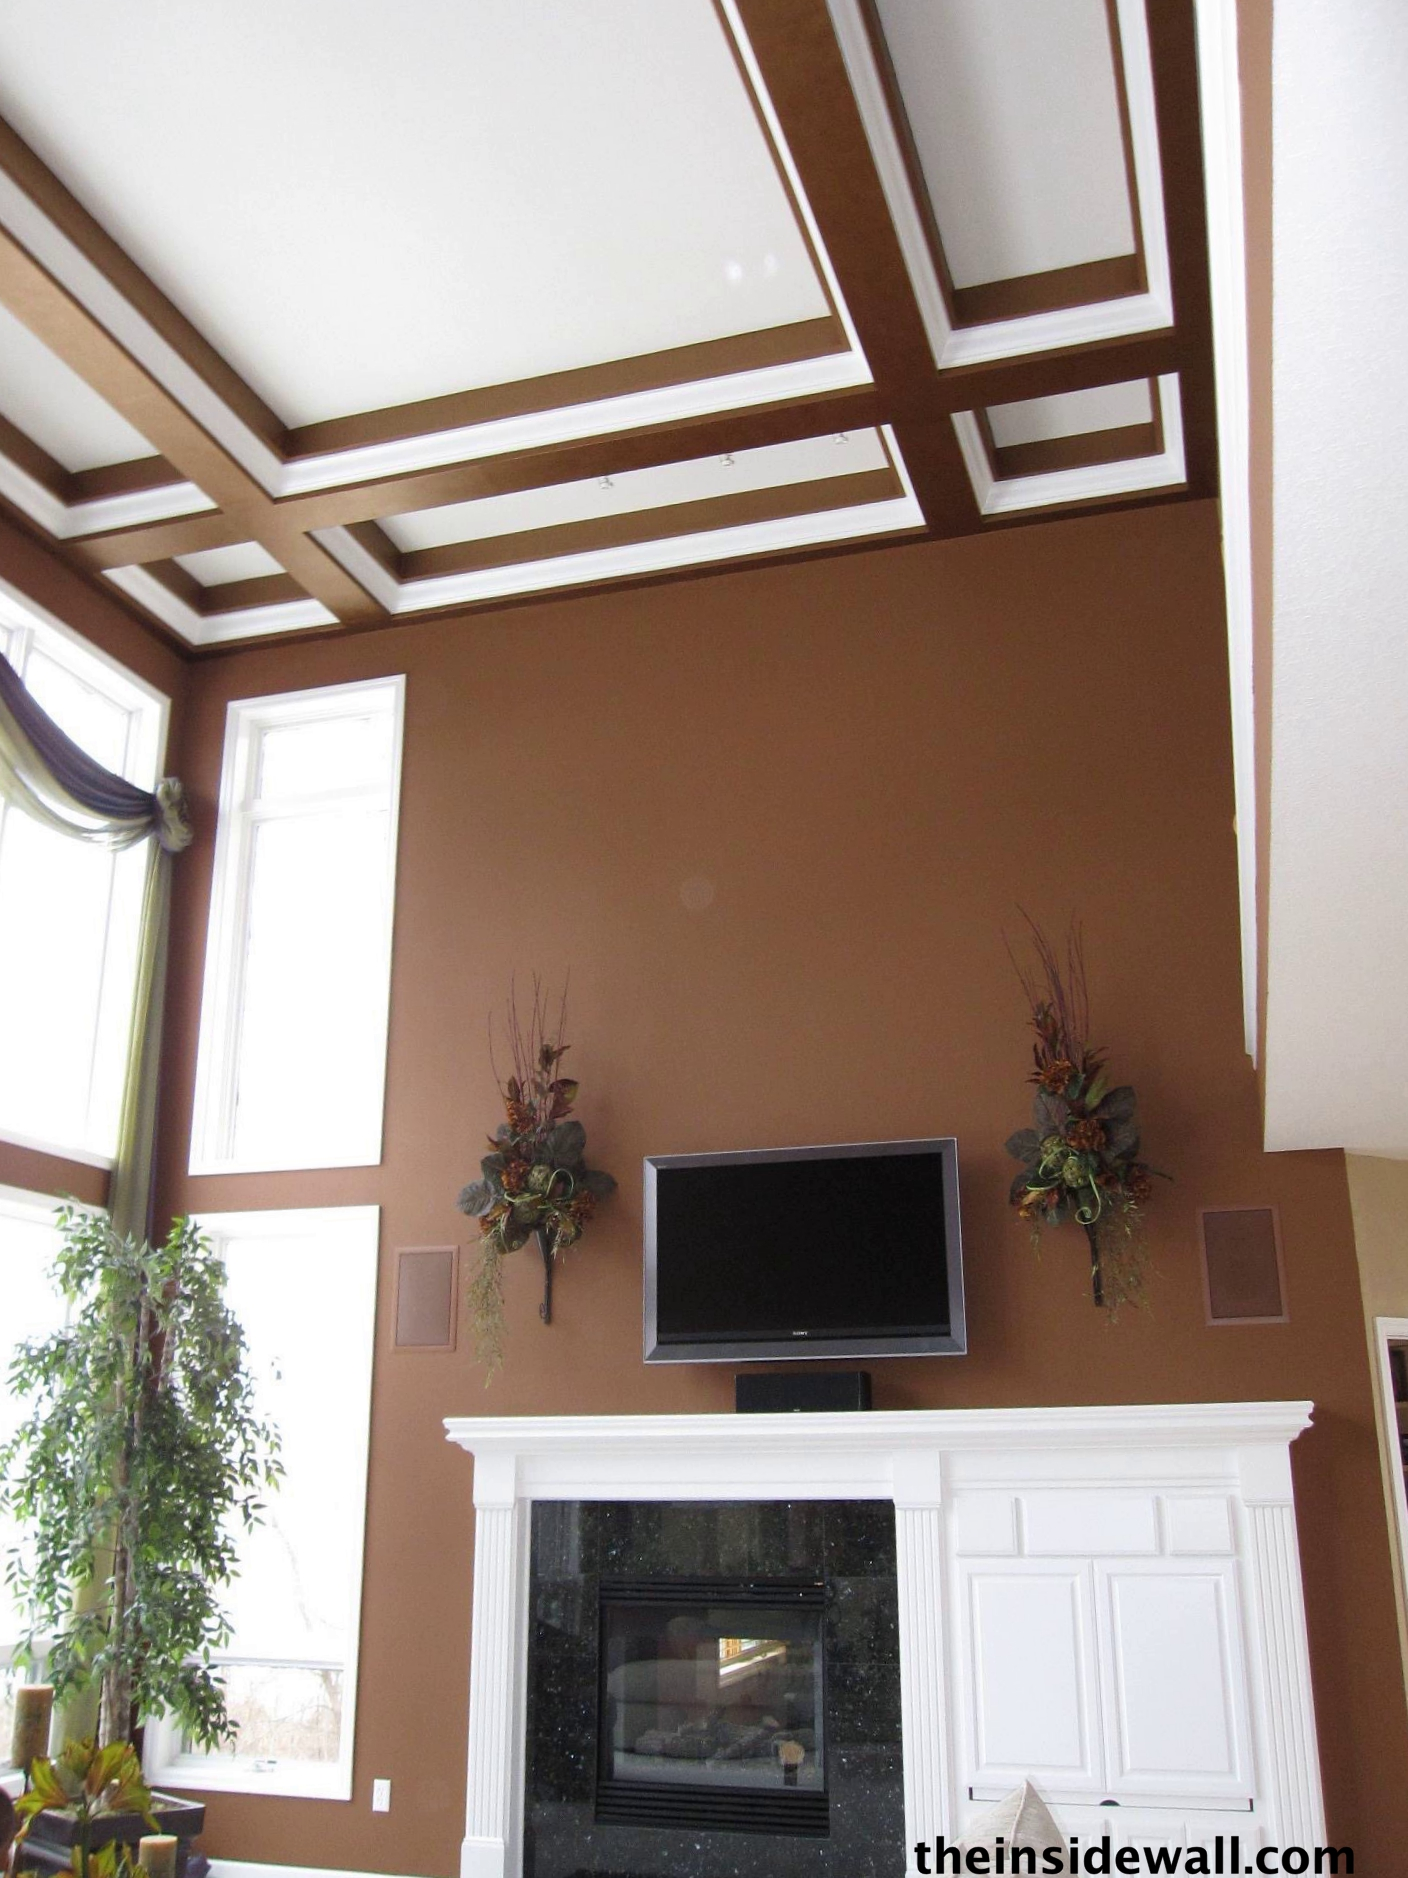 Architects, Realtors, And Designers To Provide High Quality And Detail Oriented Interior